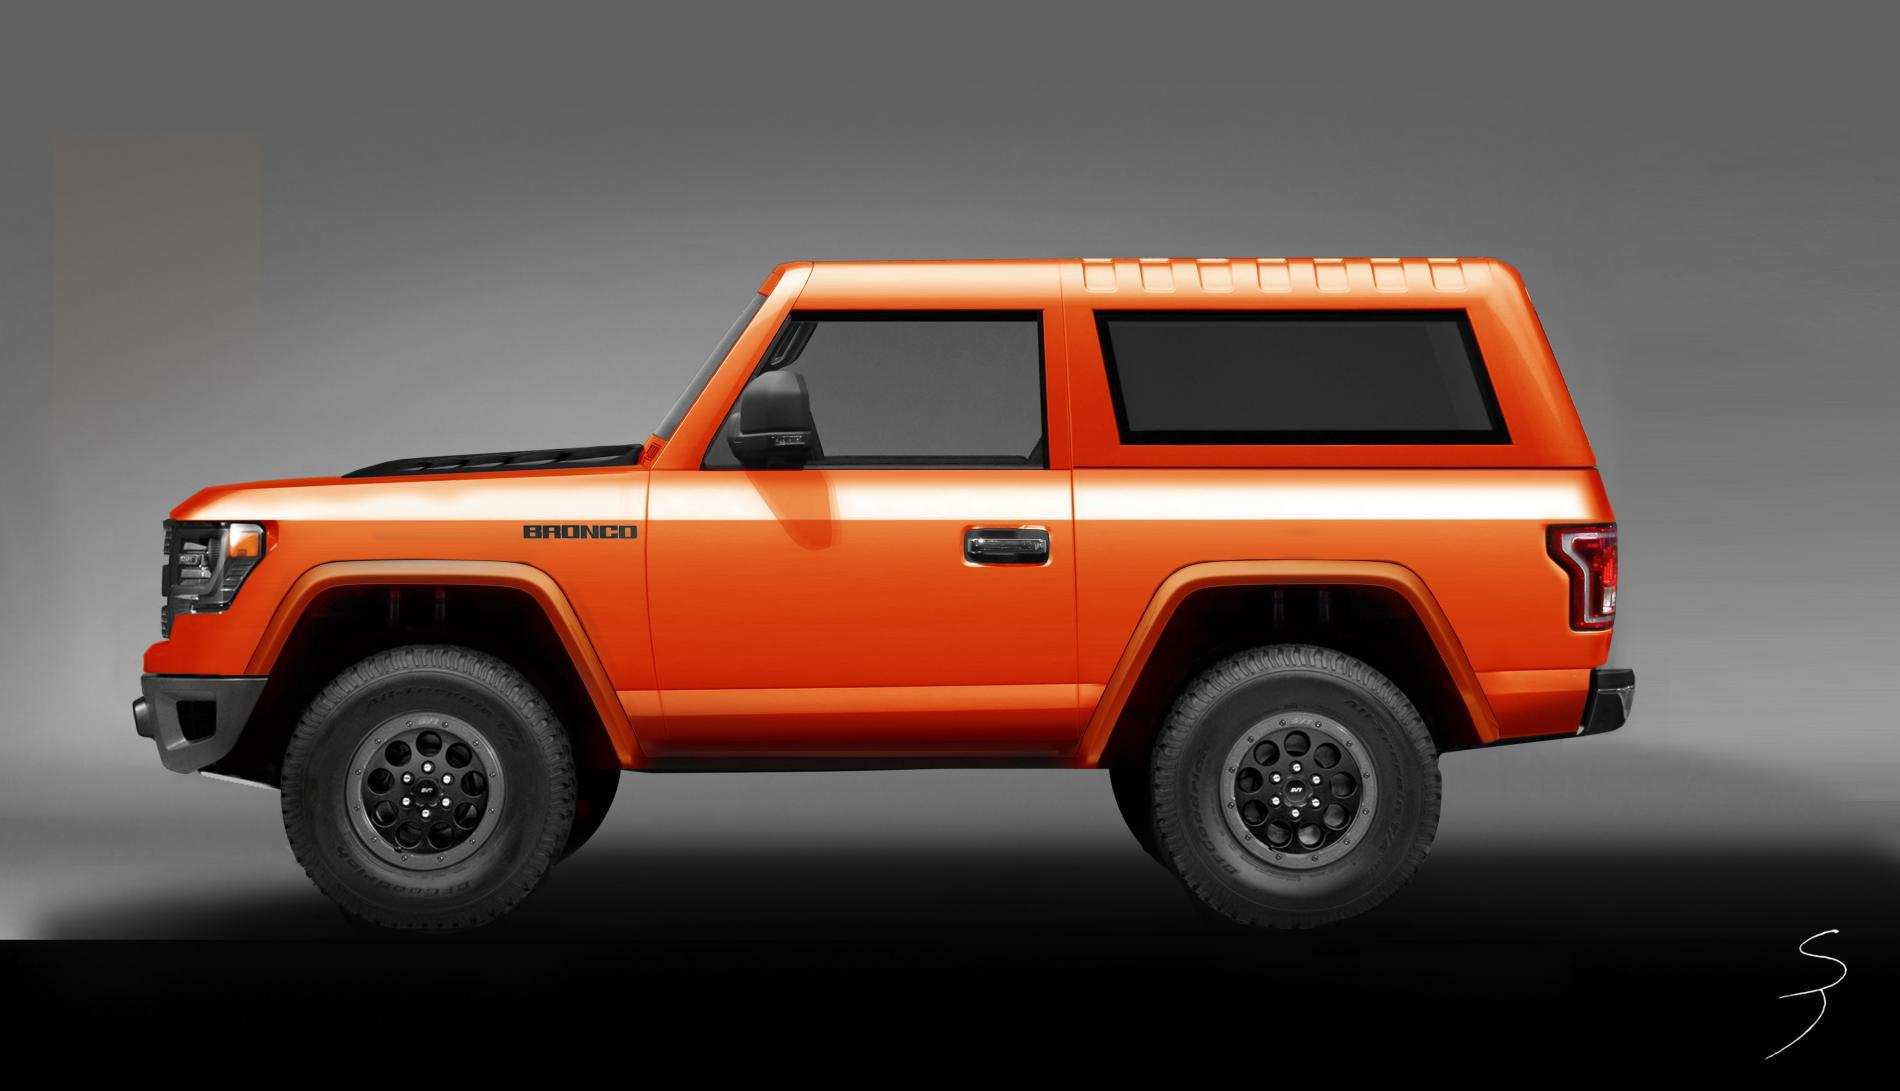 19 Best 2020 Orange Ford Bronco Concept